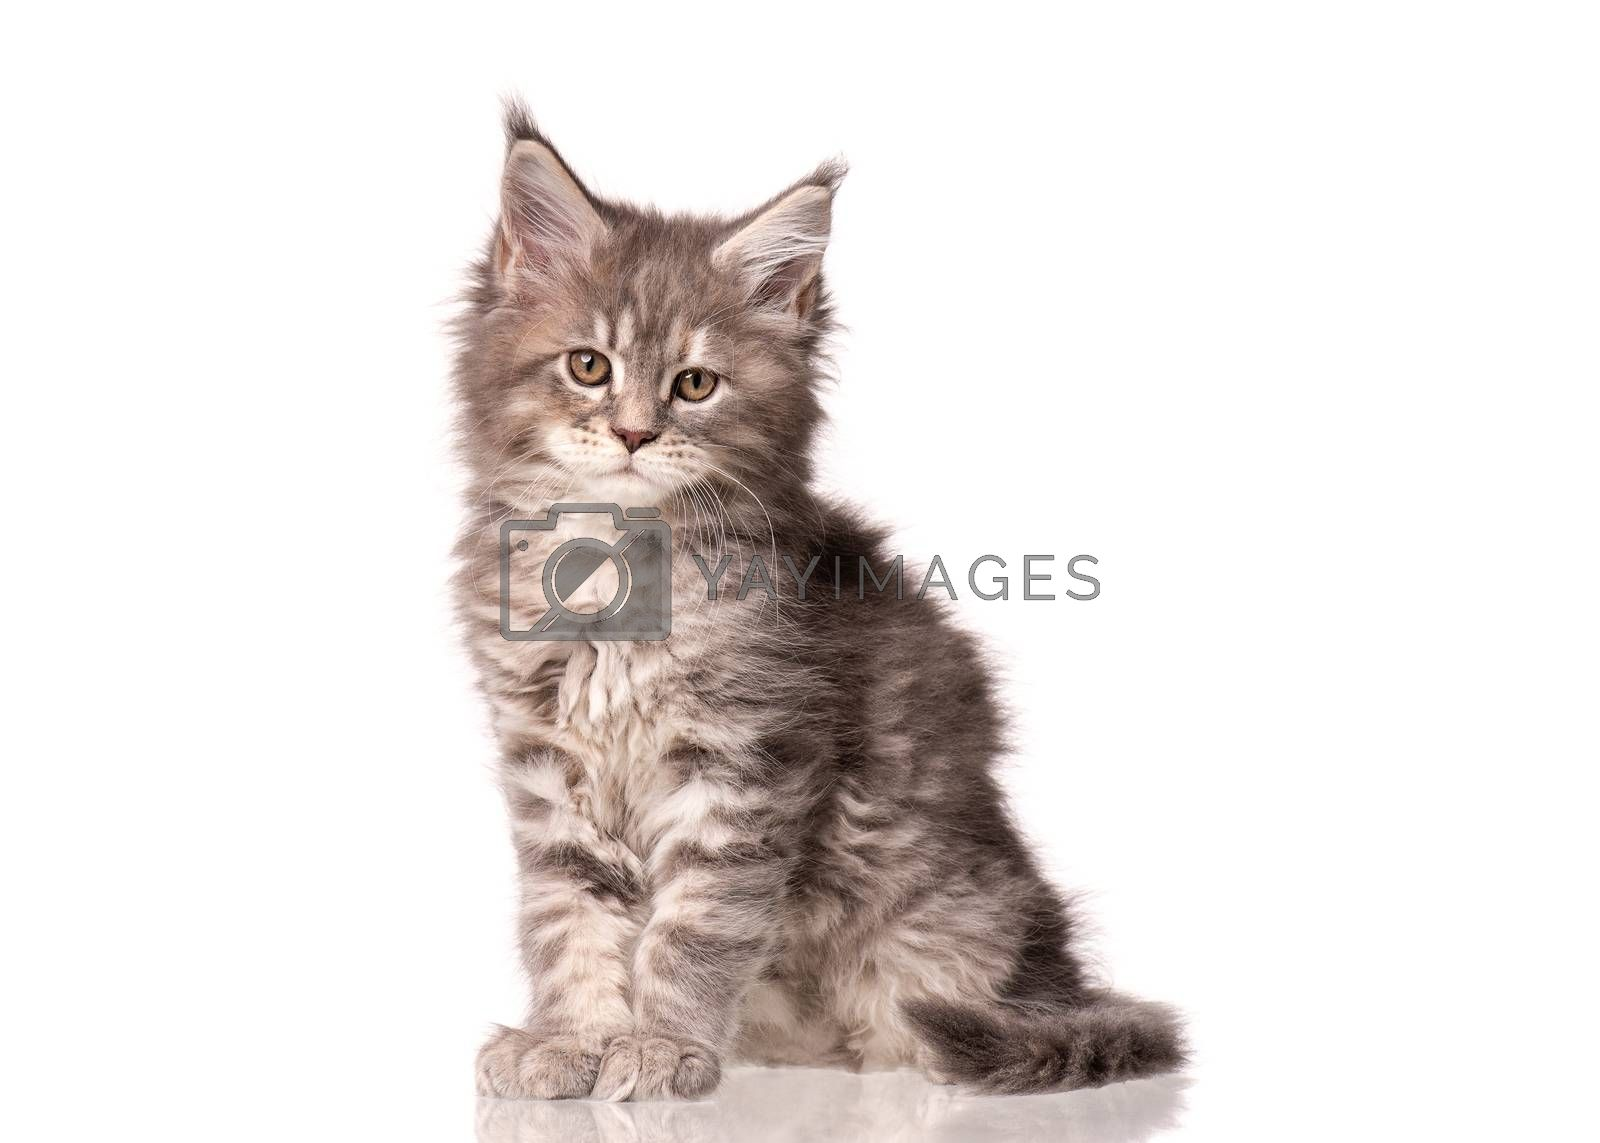 Maine Coon kitten 2 months old. Cat isolated on white background. Portrait of beautiful domestic kitty. Studio photo of gray little cat.